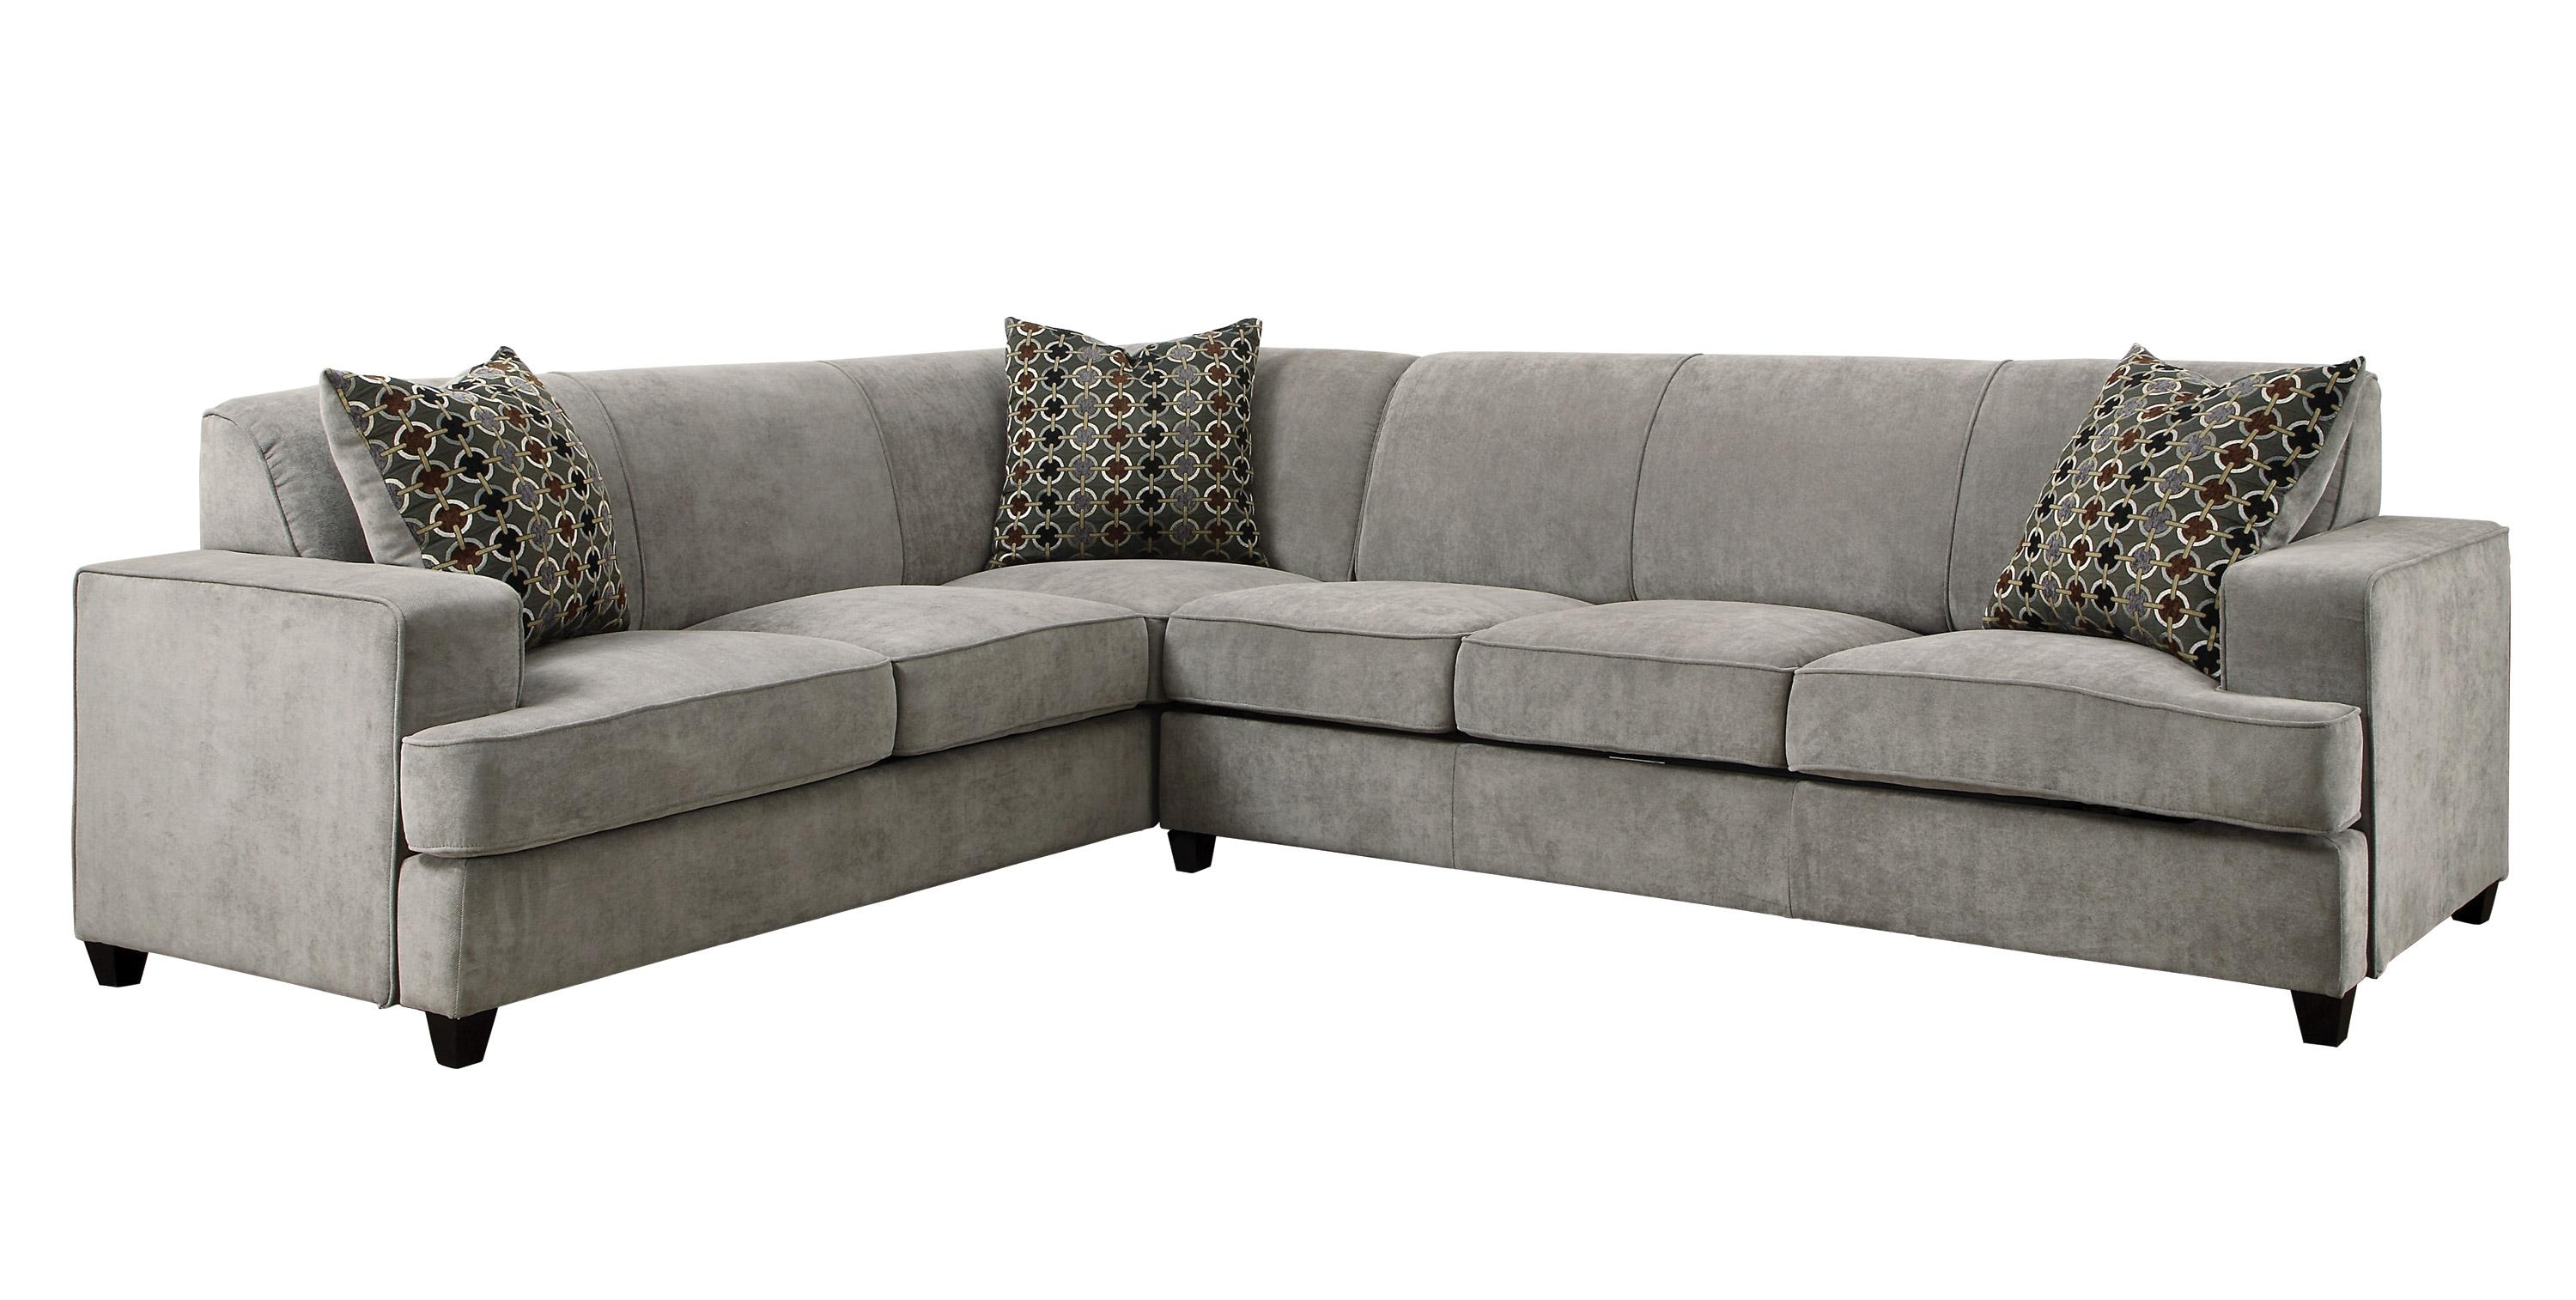 2018 Gallery Furniture Sectional Sofas In Sale: $1458.00 Tess Modern Grey Sectional Sofa With Sleeper (Gallery 16 of 20)